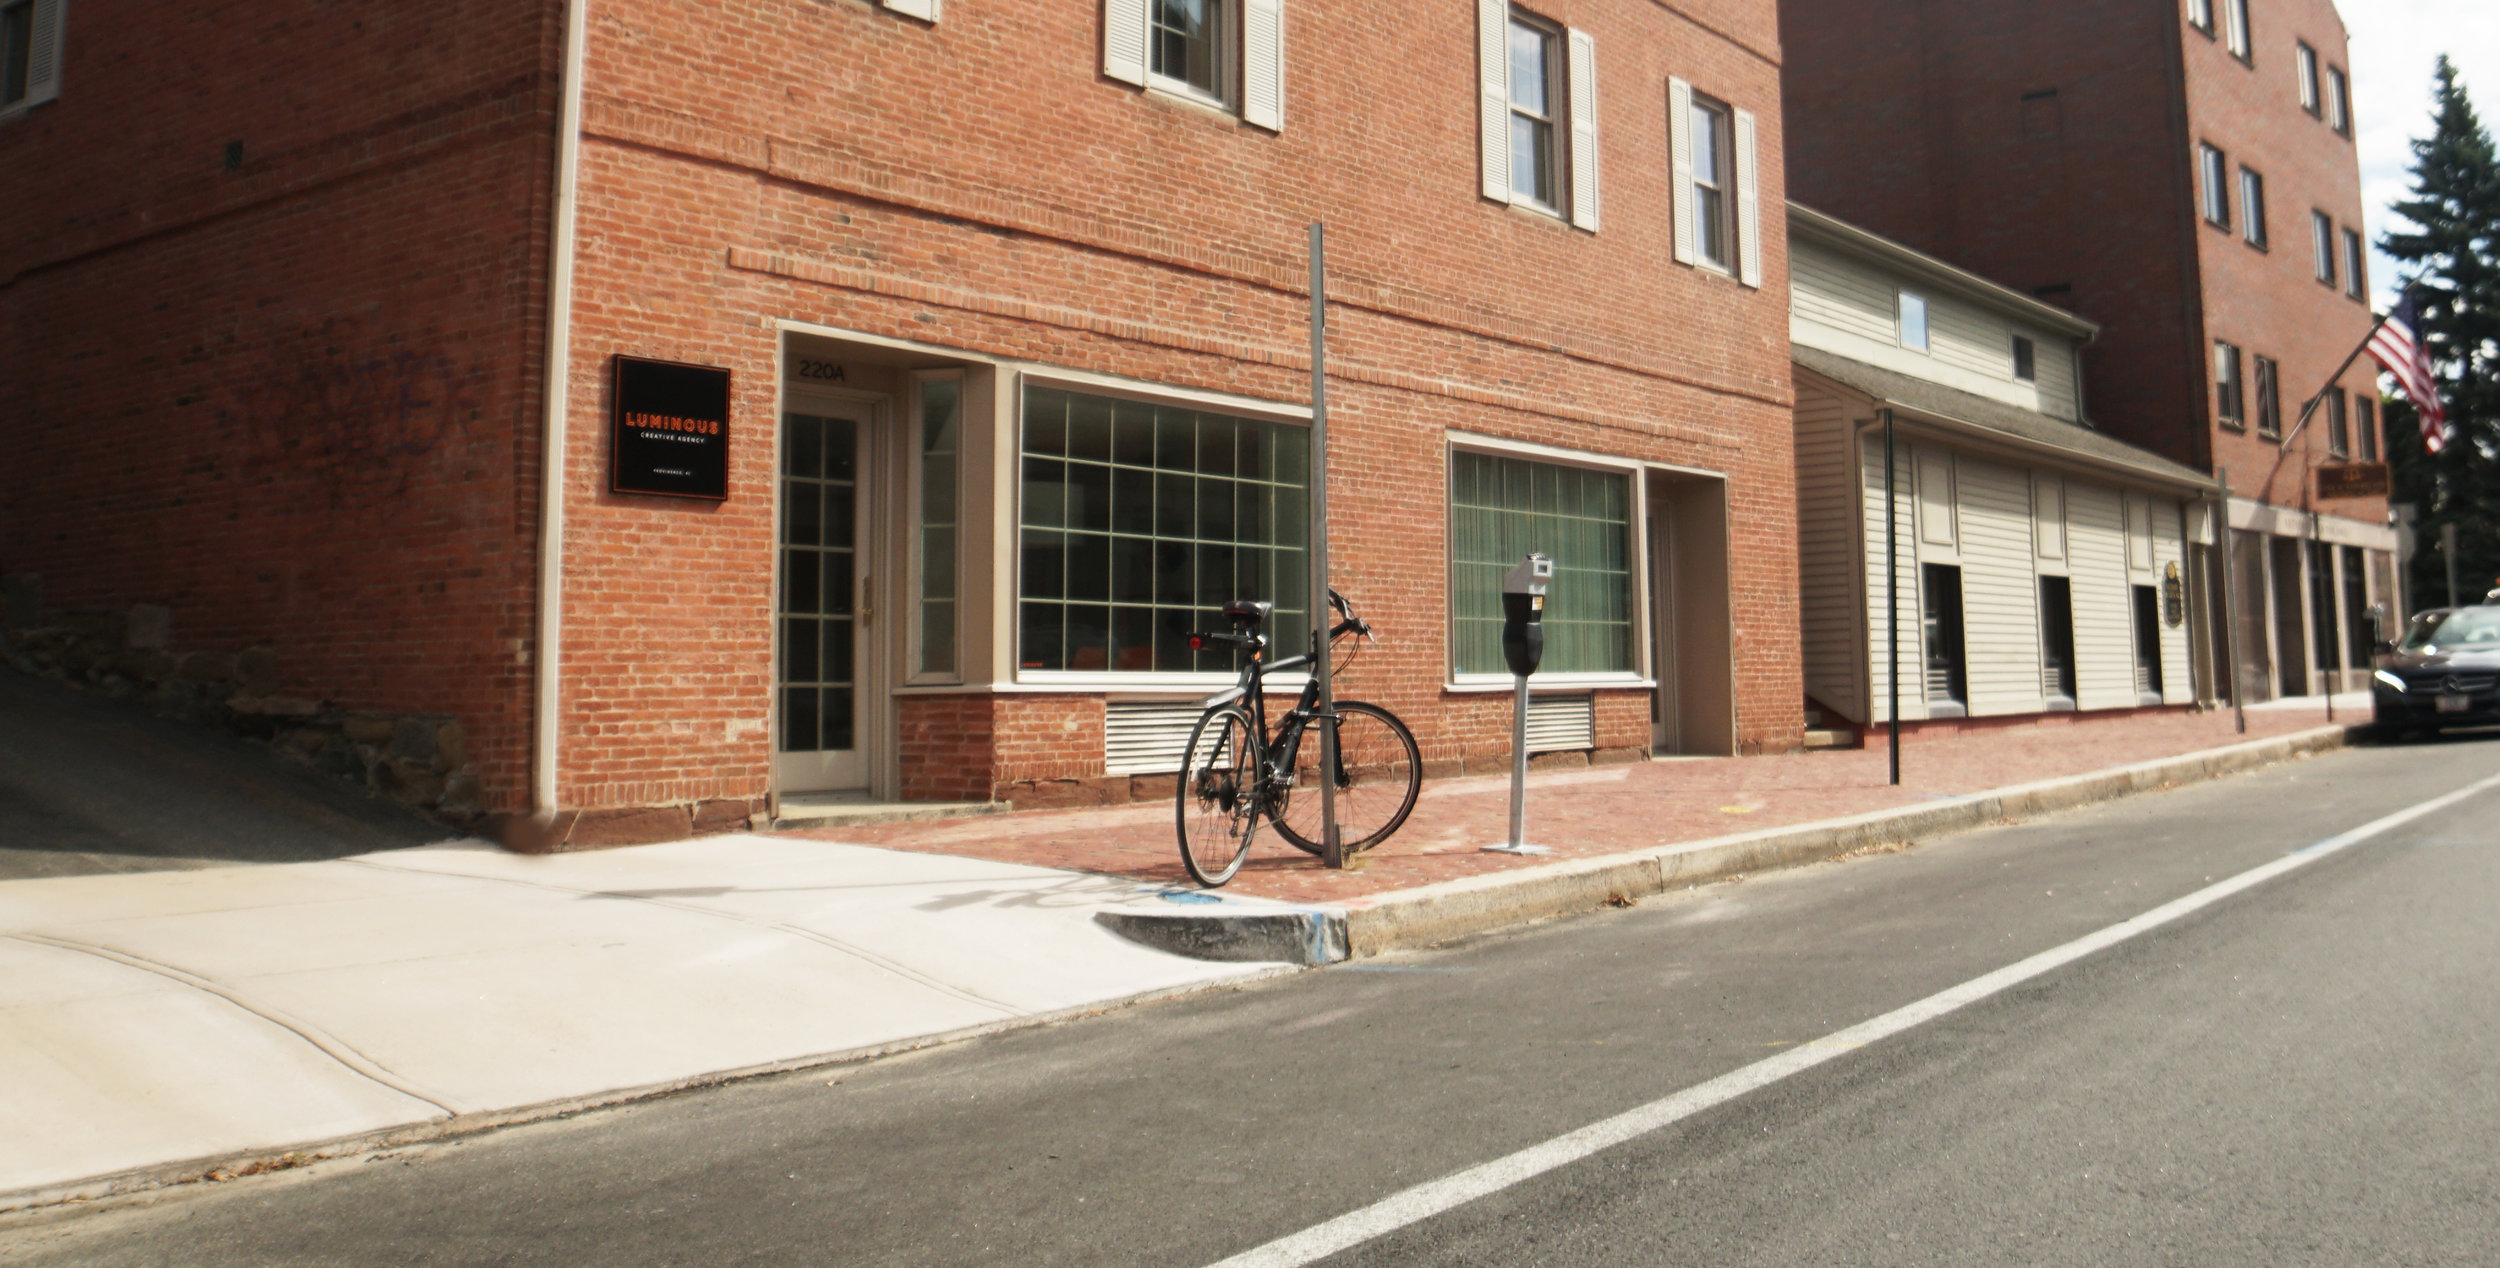 Our Space - We're located at 220 South Main Street in Providence, RI nestled next to an art house theater with the creativity of RISD surrounding us.